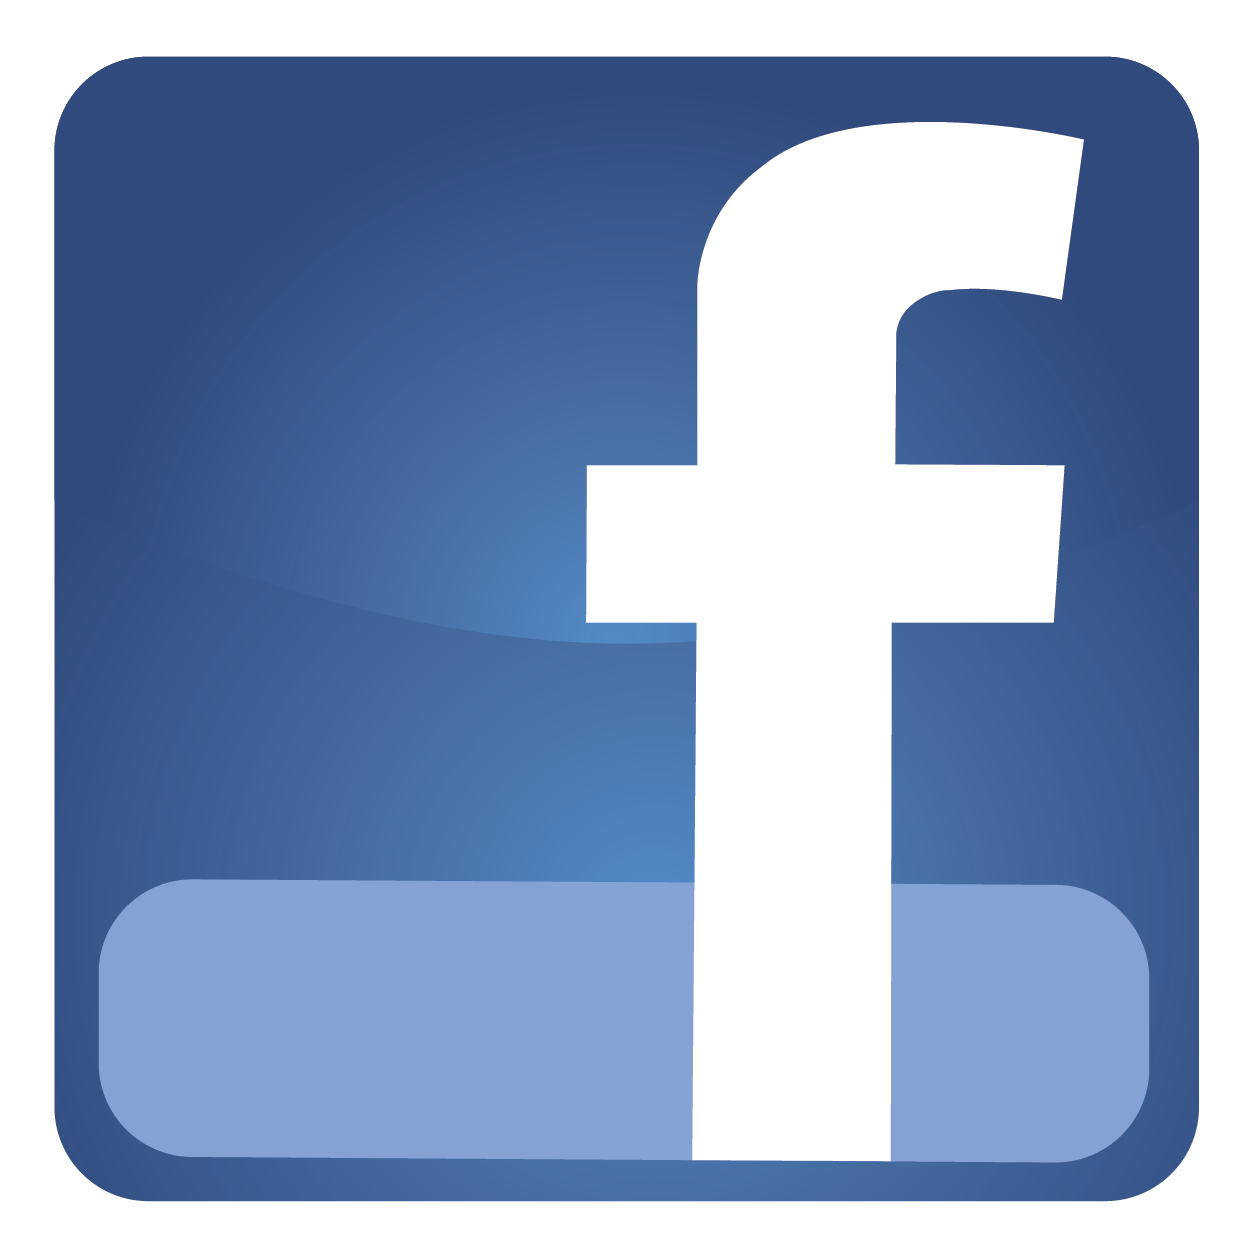 Fb logo png. Facebook transparent pictures free